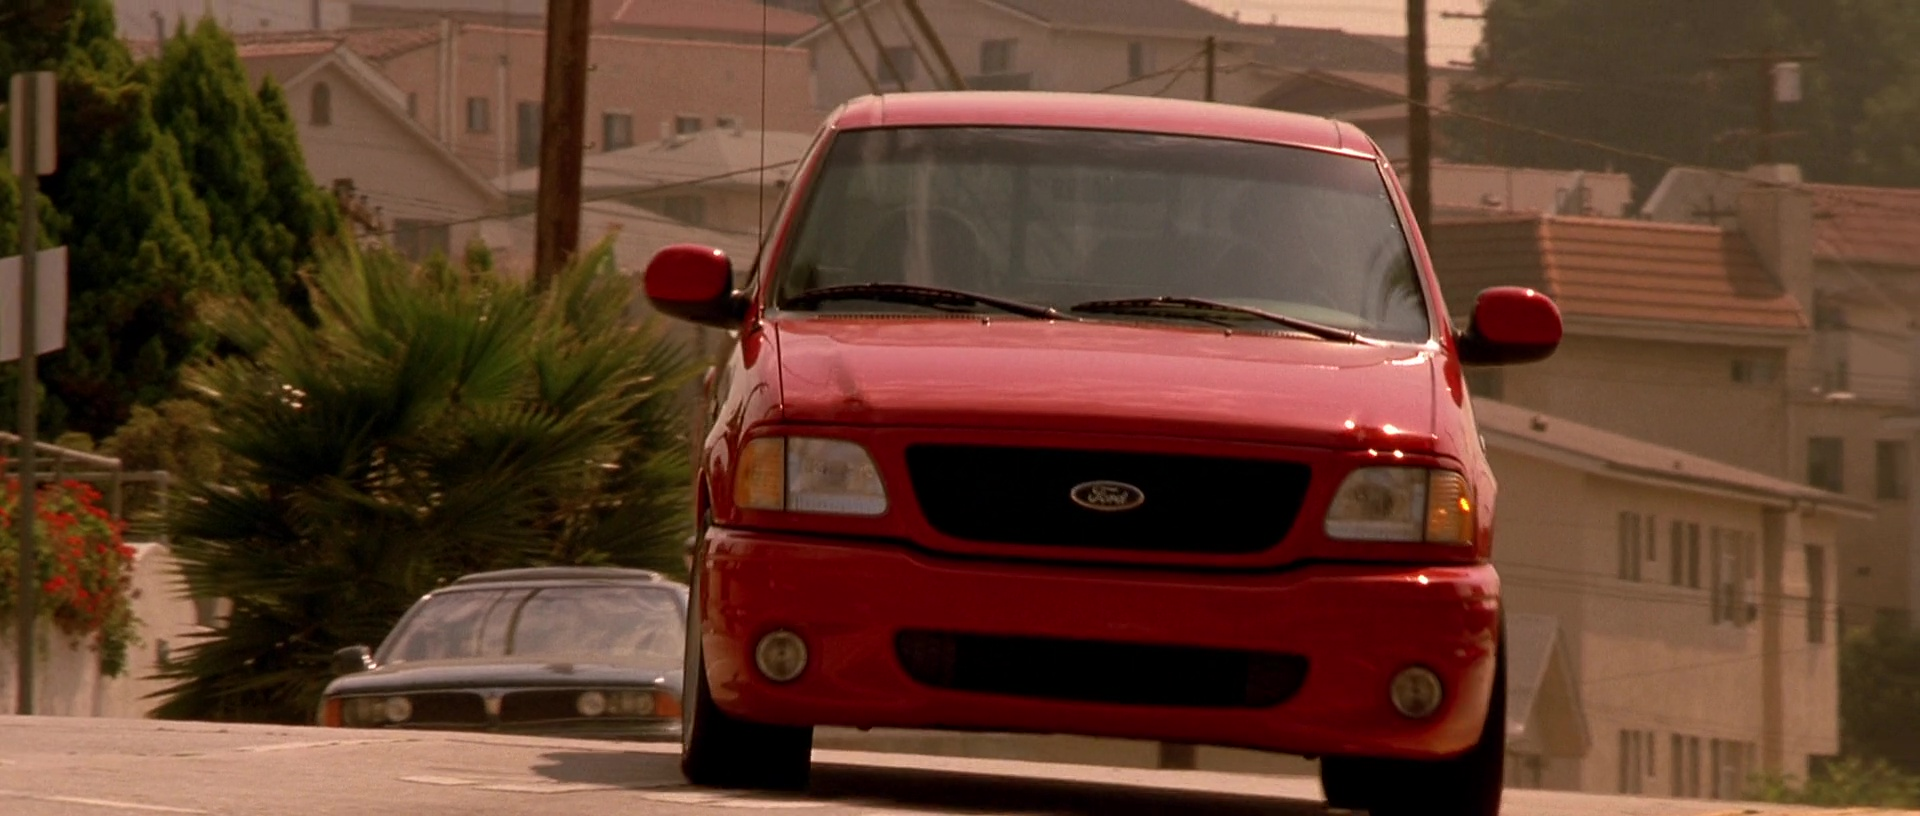 image brian s ford f150 svt lightning jpg the fast and the